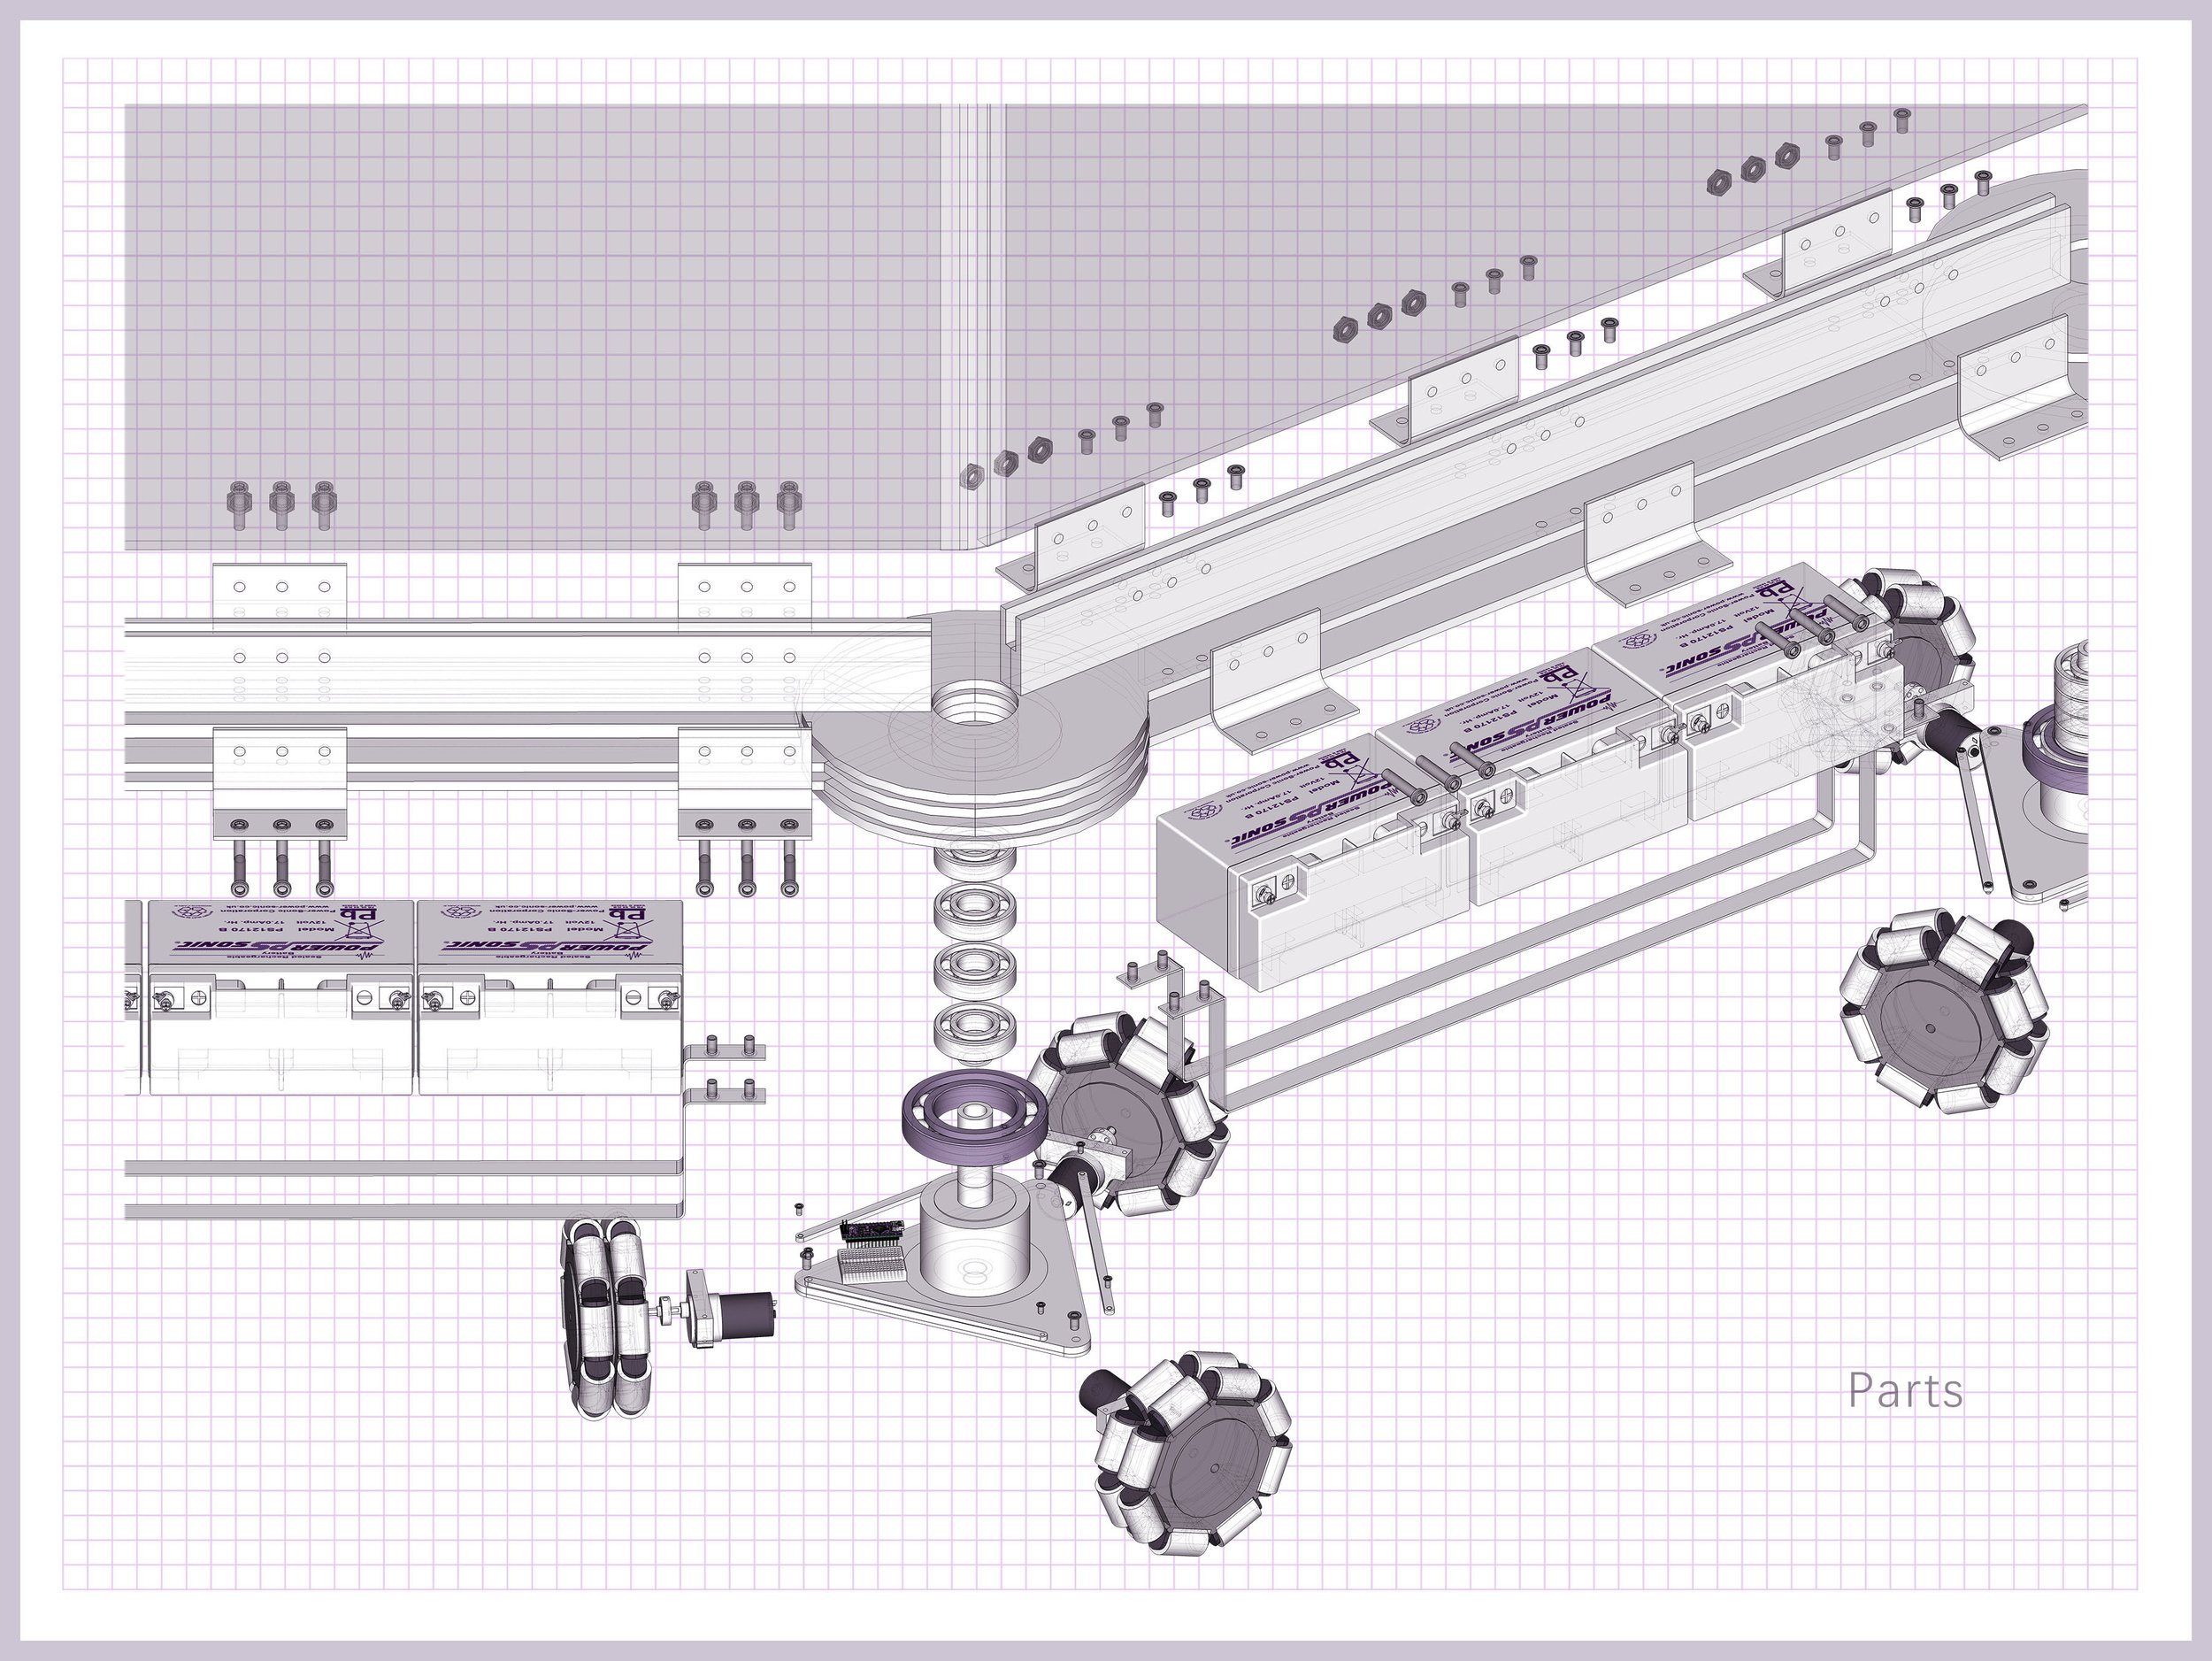 Design Drawings Honghao Deng_页面_03.jpg